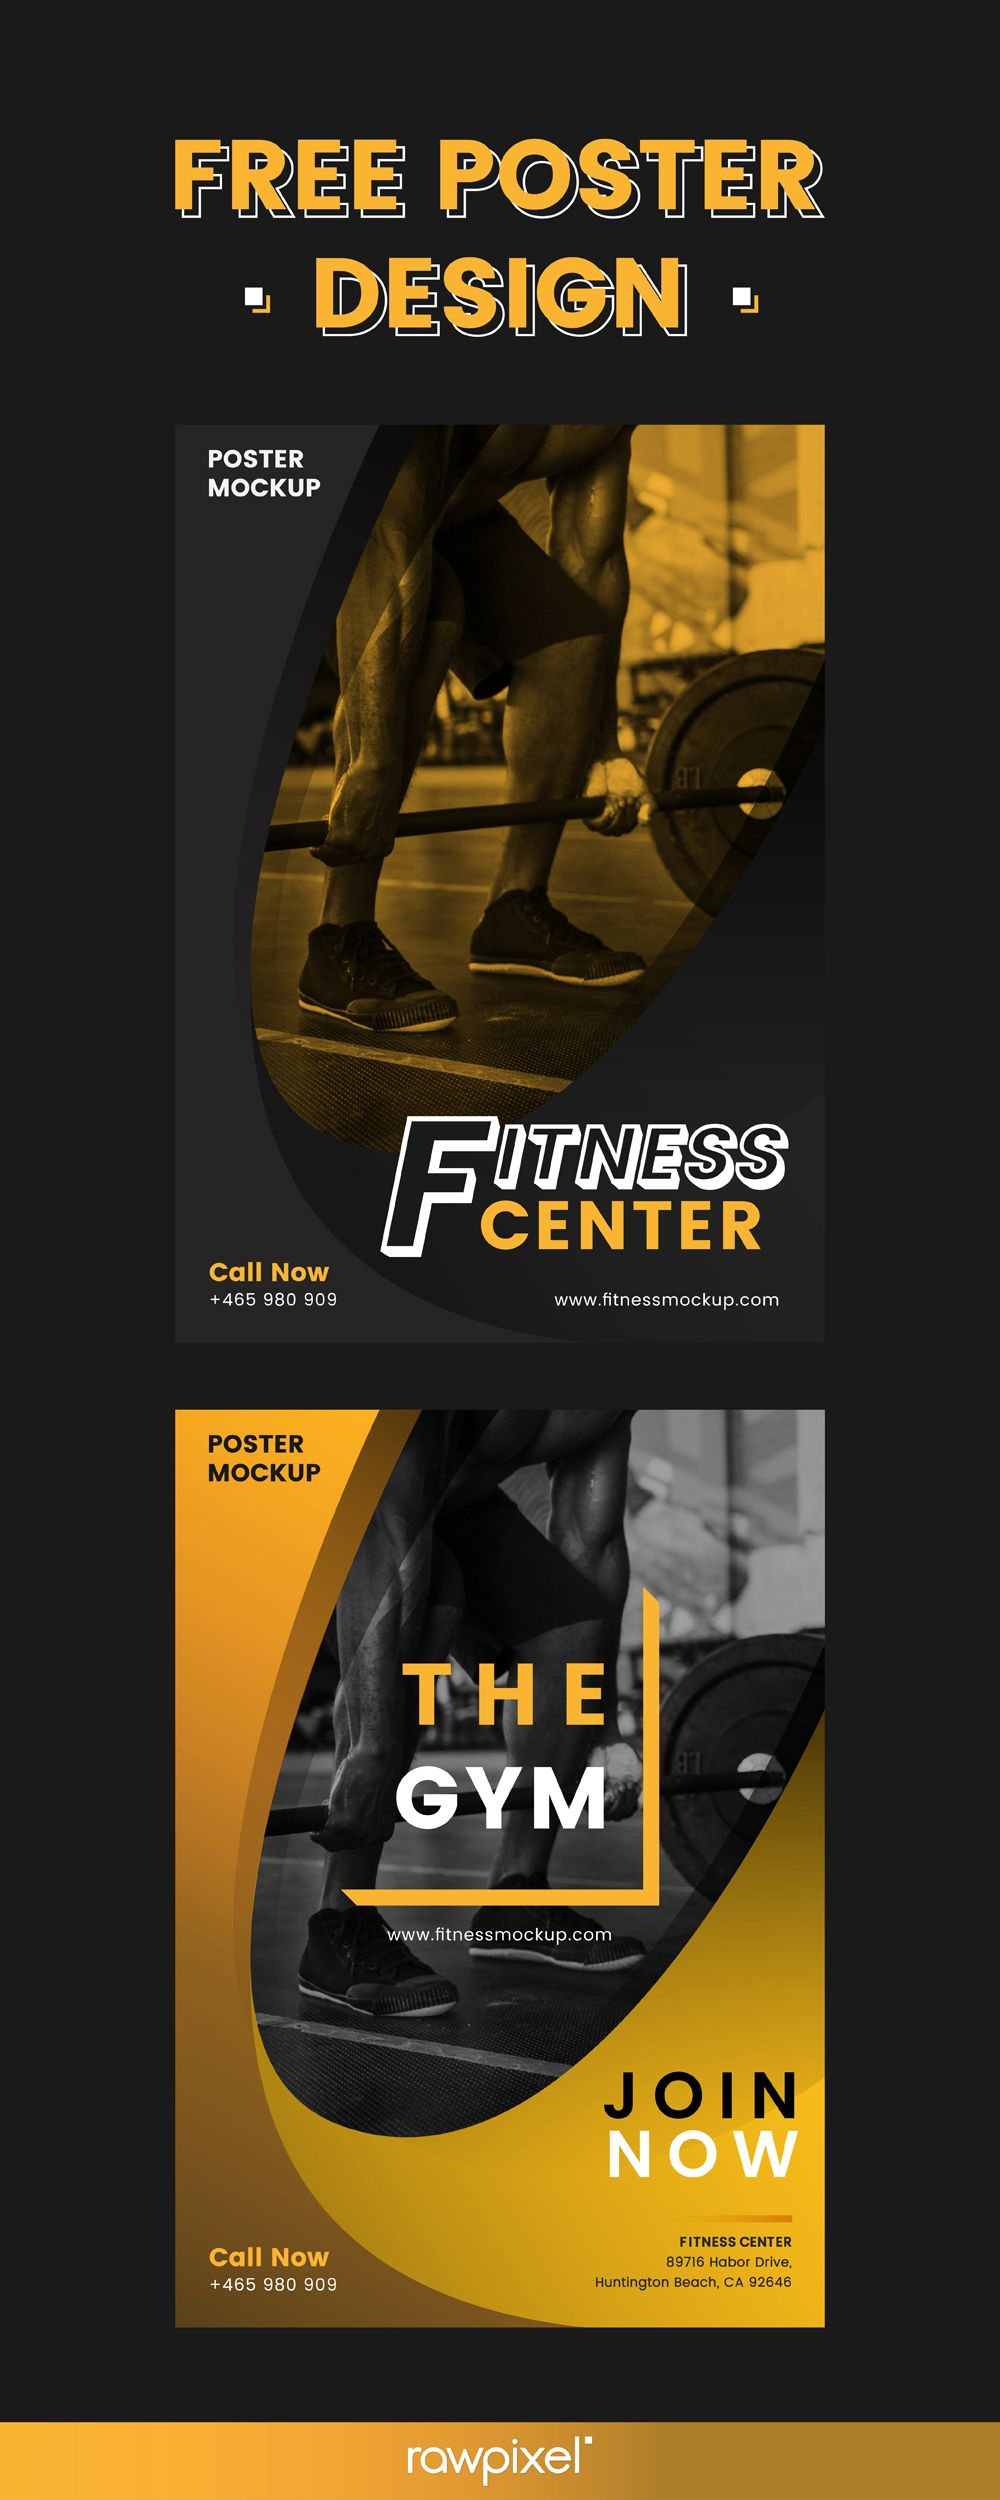 Download Free Poster Templates For Fitness Centers And Sports Gyms At Rawpixel Com Poster Design Layout Gym Poster Free Poster